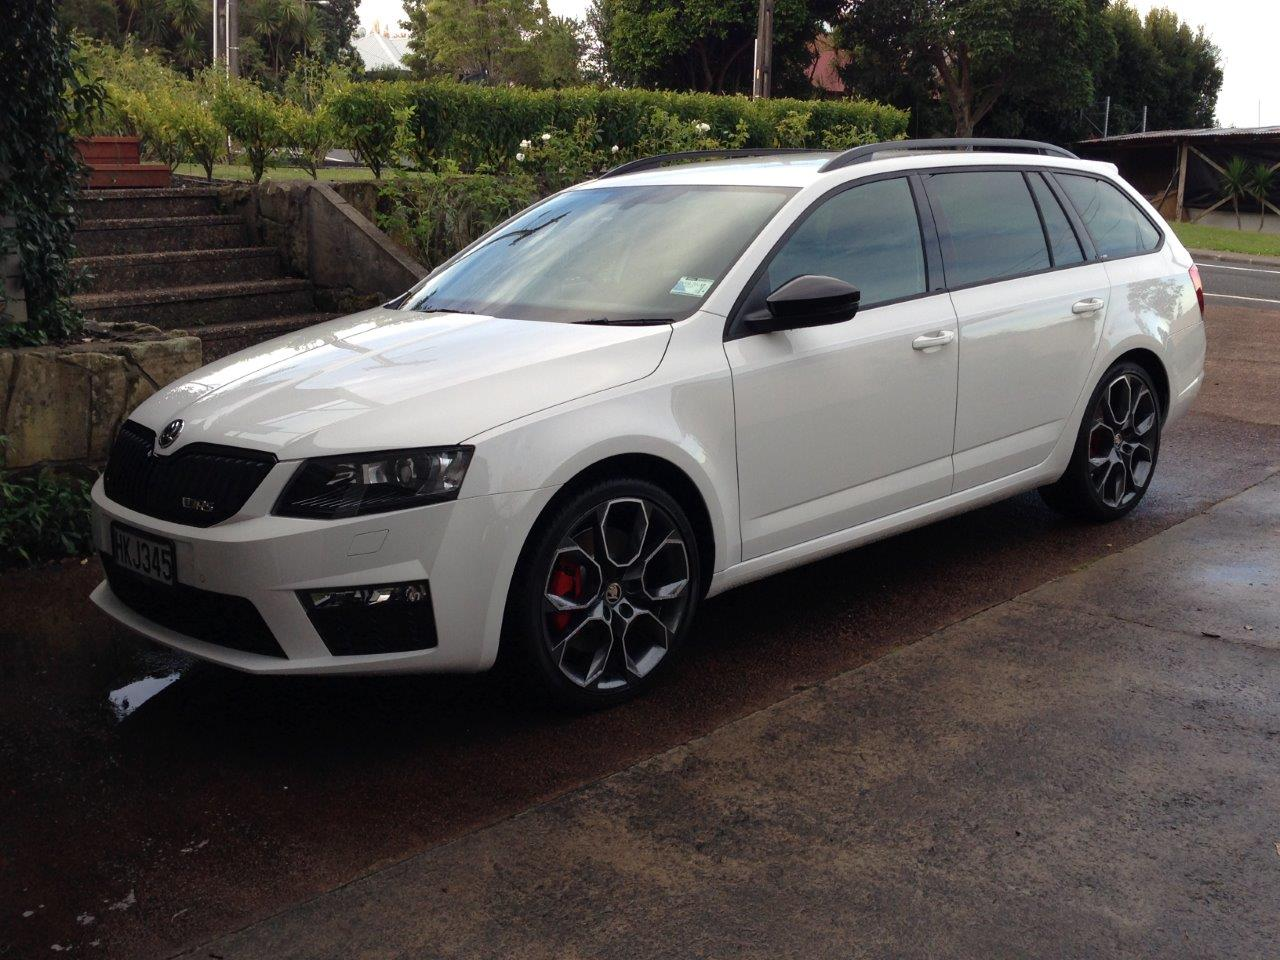 octavia rs combi tsi dsg octavia mk iii gallery briskoda. Black Bedroom Furniture Sets. Home Design Ideas